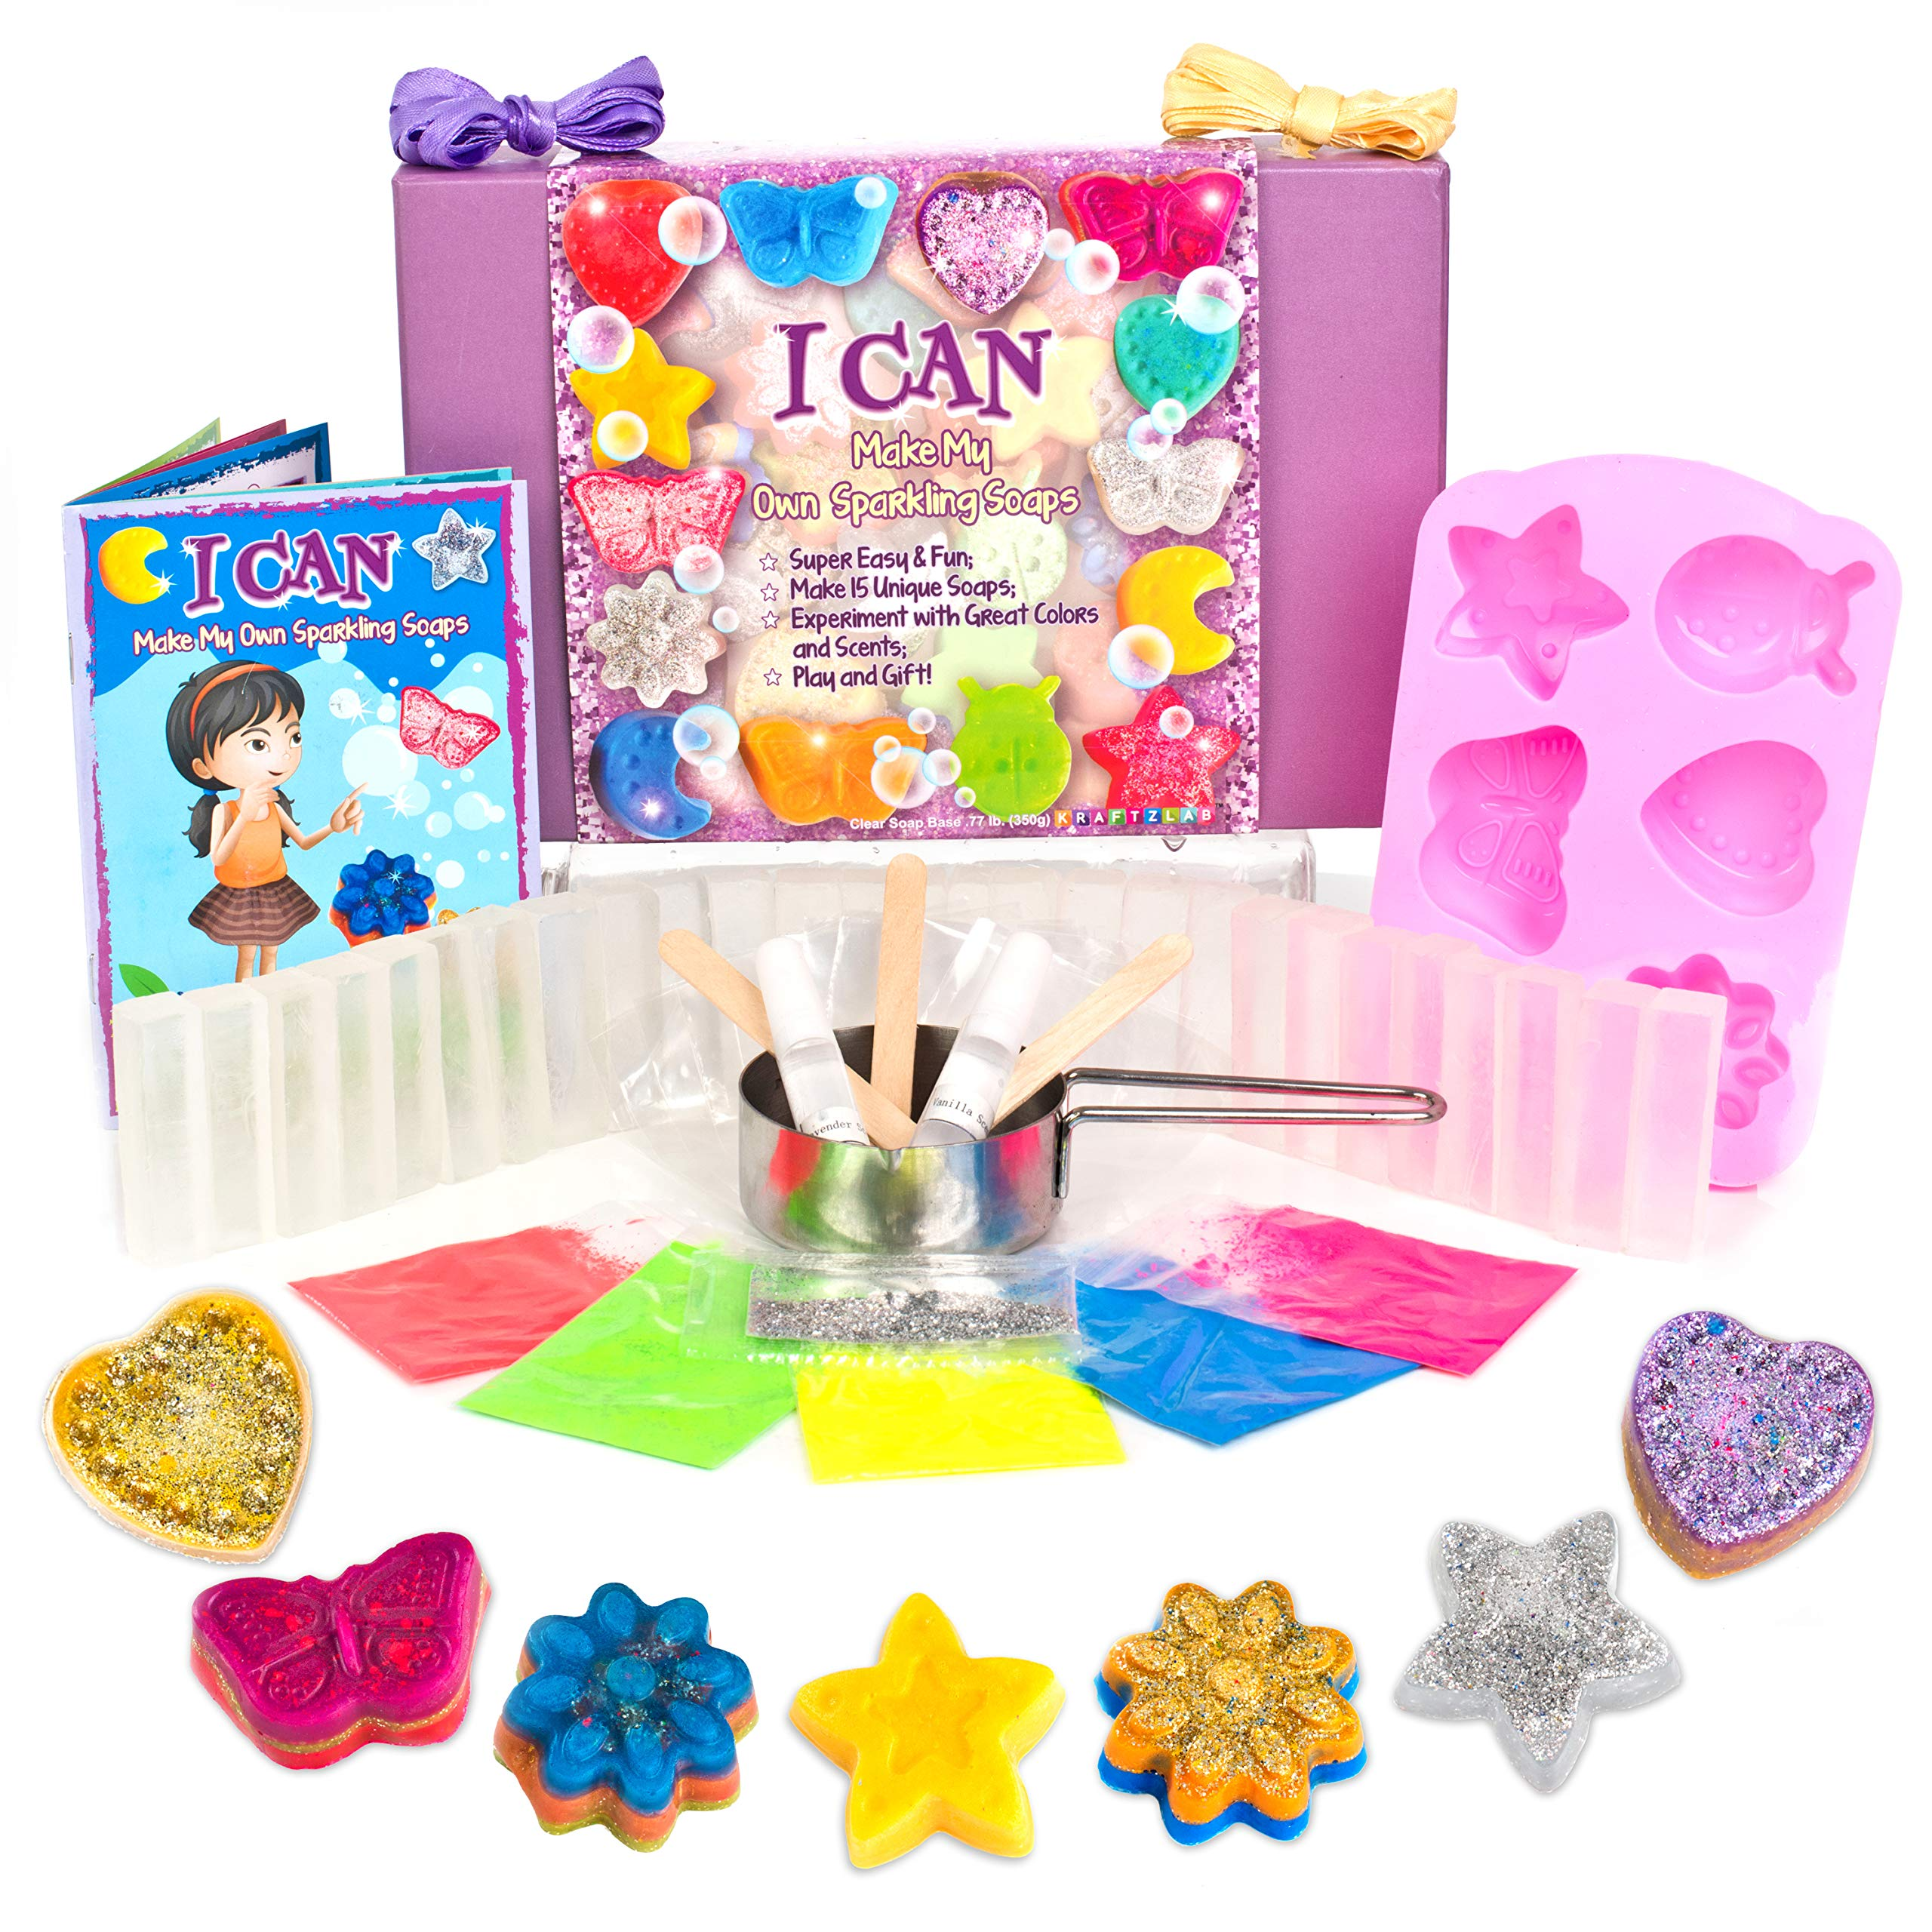 KRAFTZLAB Make Your Own Soap Educational Activity Kit for Girls and Boys   All Soap Making Supplies and Color Booklet Included Plus Gift Box   Ideal Soap Kits Gifts for Kids